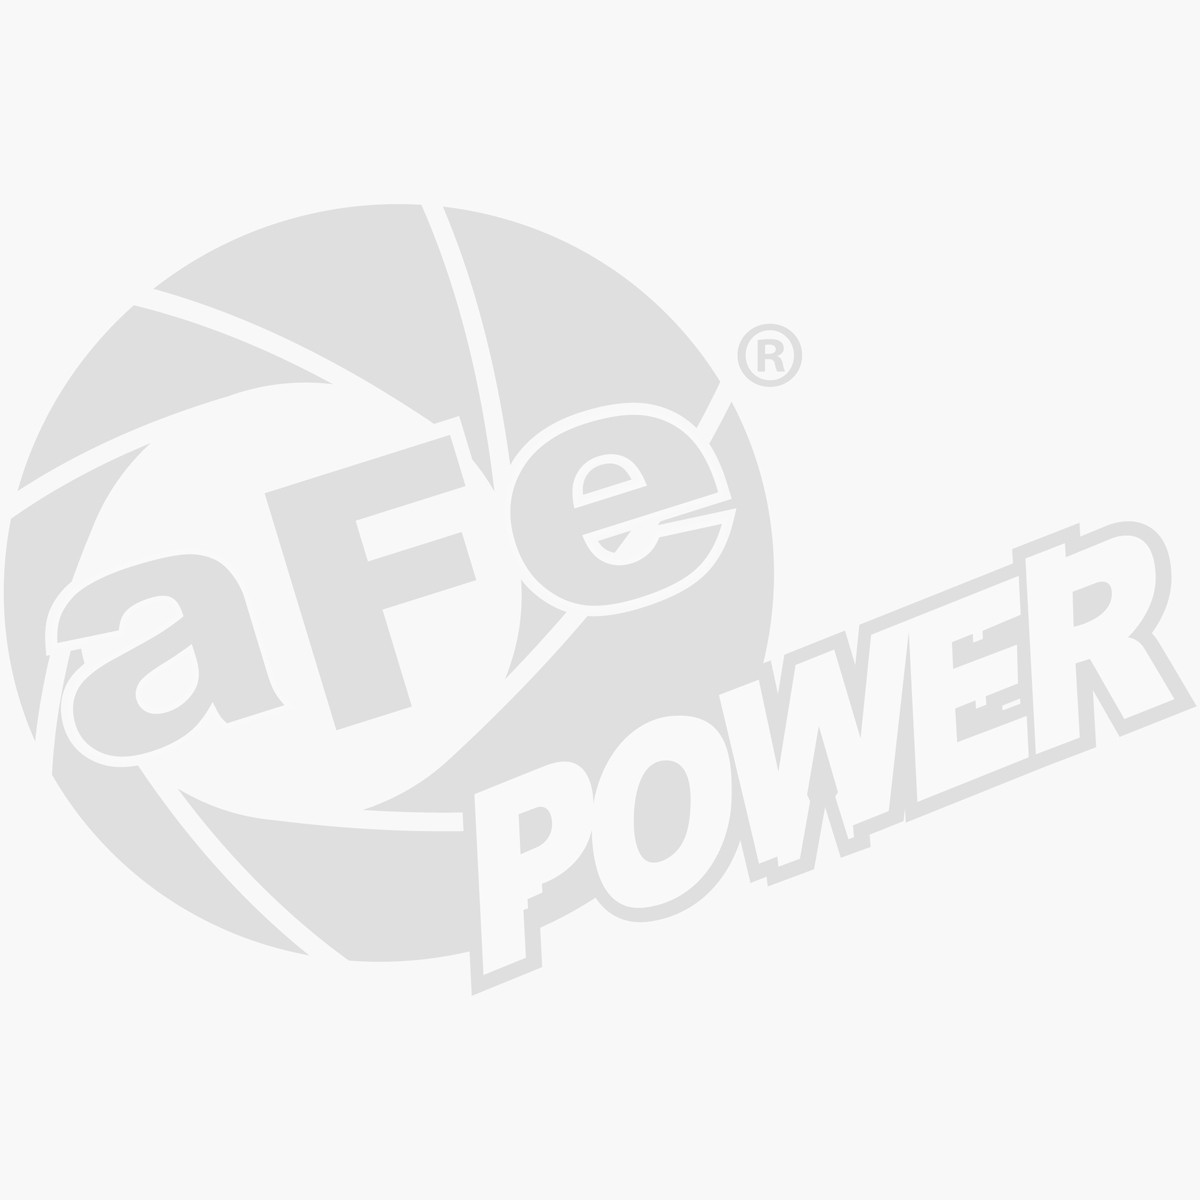 aFe POWER 18-11651 Round Racing Pro 5R Air Filter